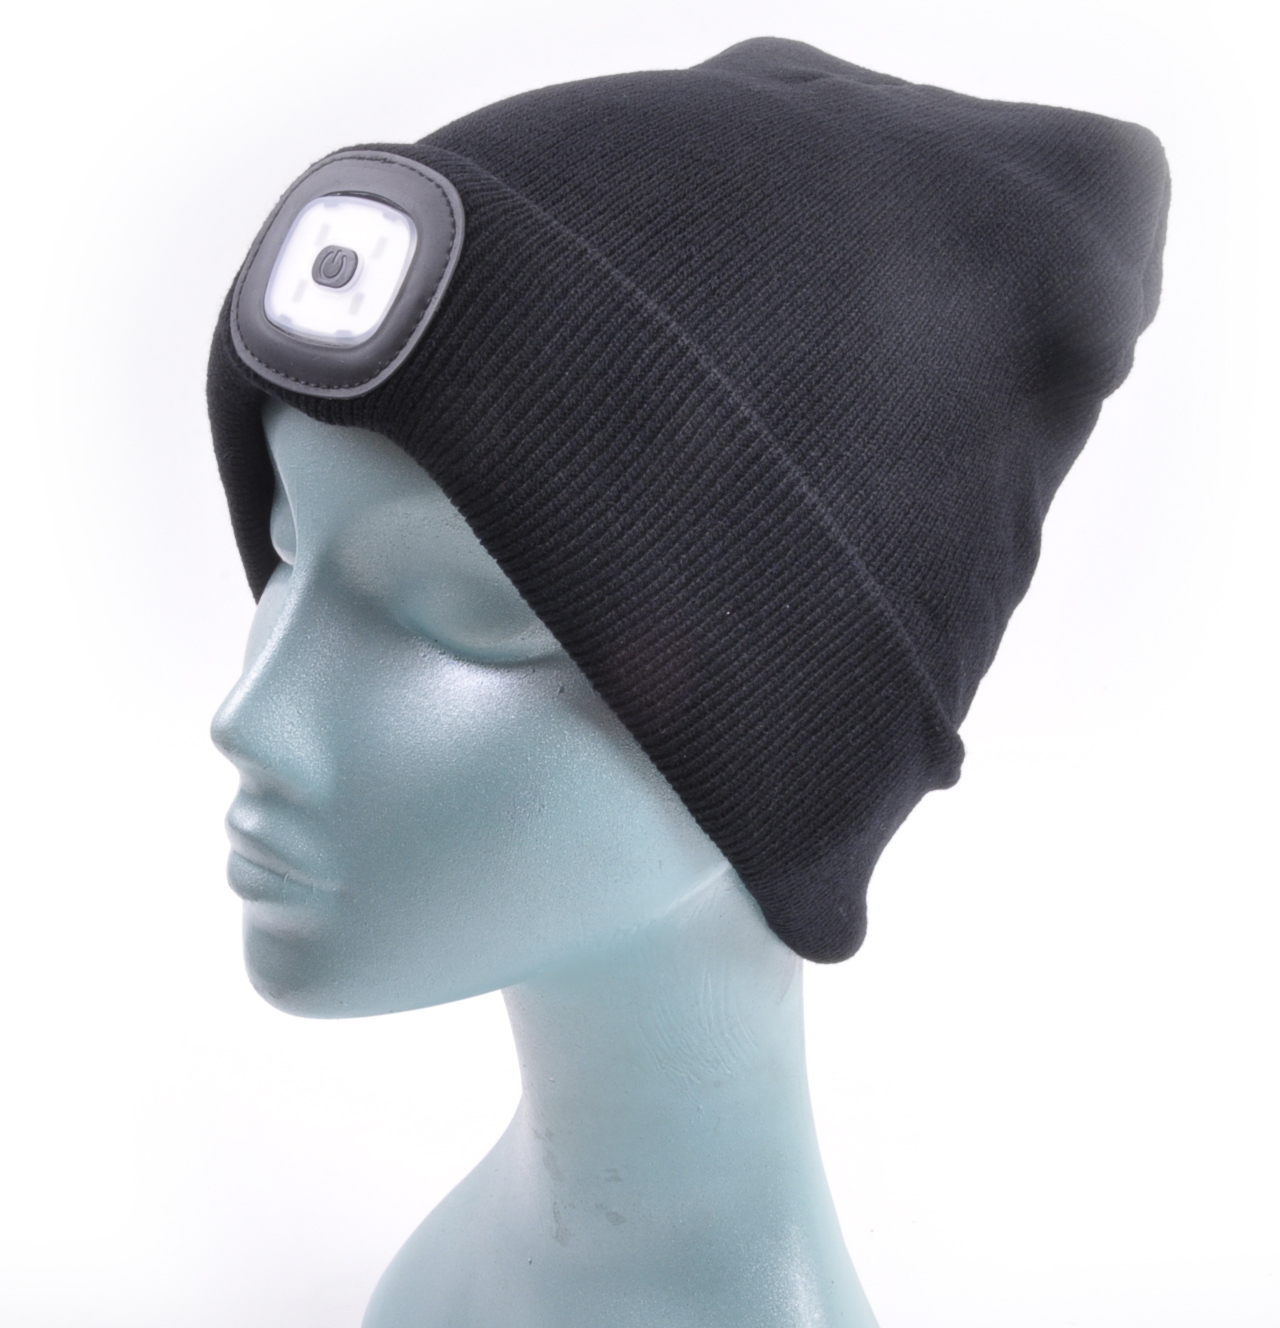 Black LED Beanie - Beanie hat with built in LED torch.  bc00bca0908a